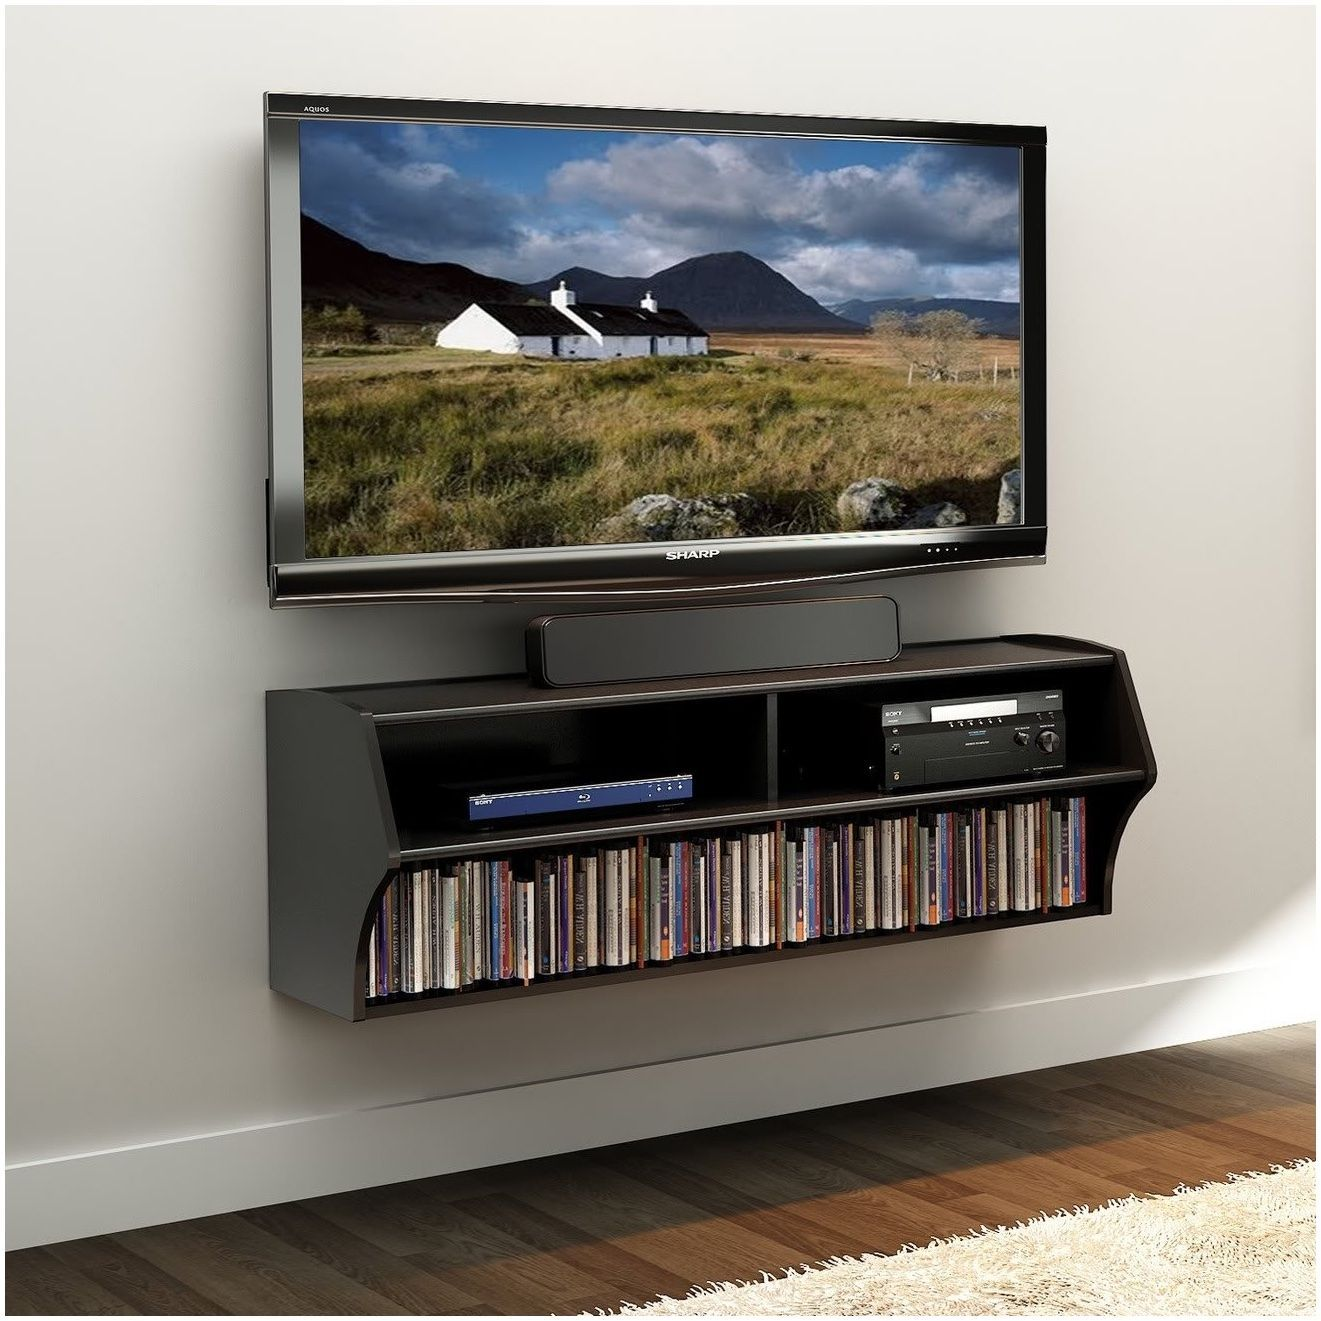 Shelf For Cable Box Under Wall Mounted Tv